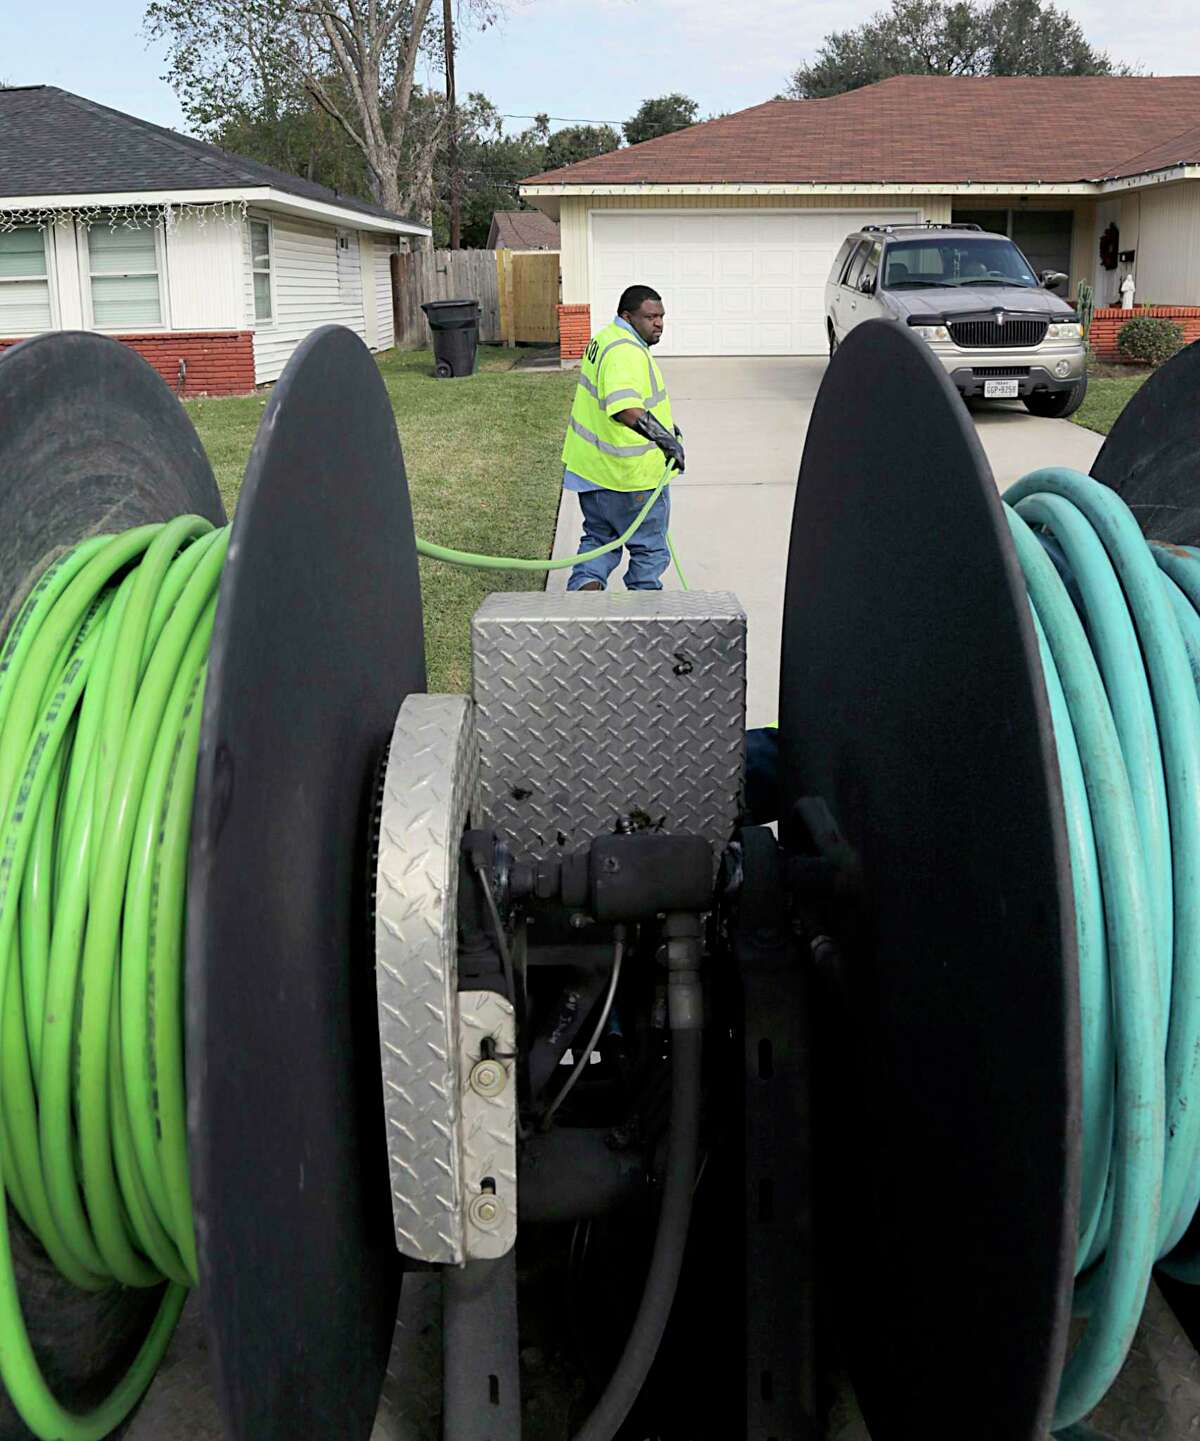 A Houston utility worker unspools a water jet while clearing a sewer blockage in 2016. City council on Wednesday delayed a vote on a proposed $2 billion settlement with federal and state regulators that would accelerate upgrades to the city's struggling sewer system over the next 15 years. ( James Nielsen / Houston Chronicle )